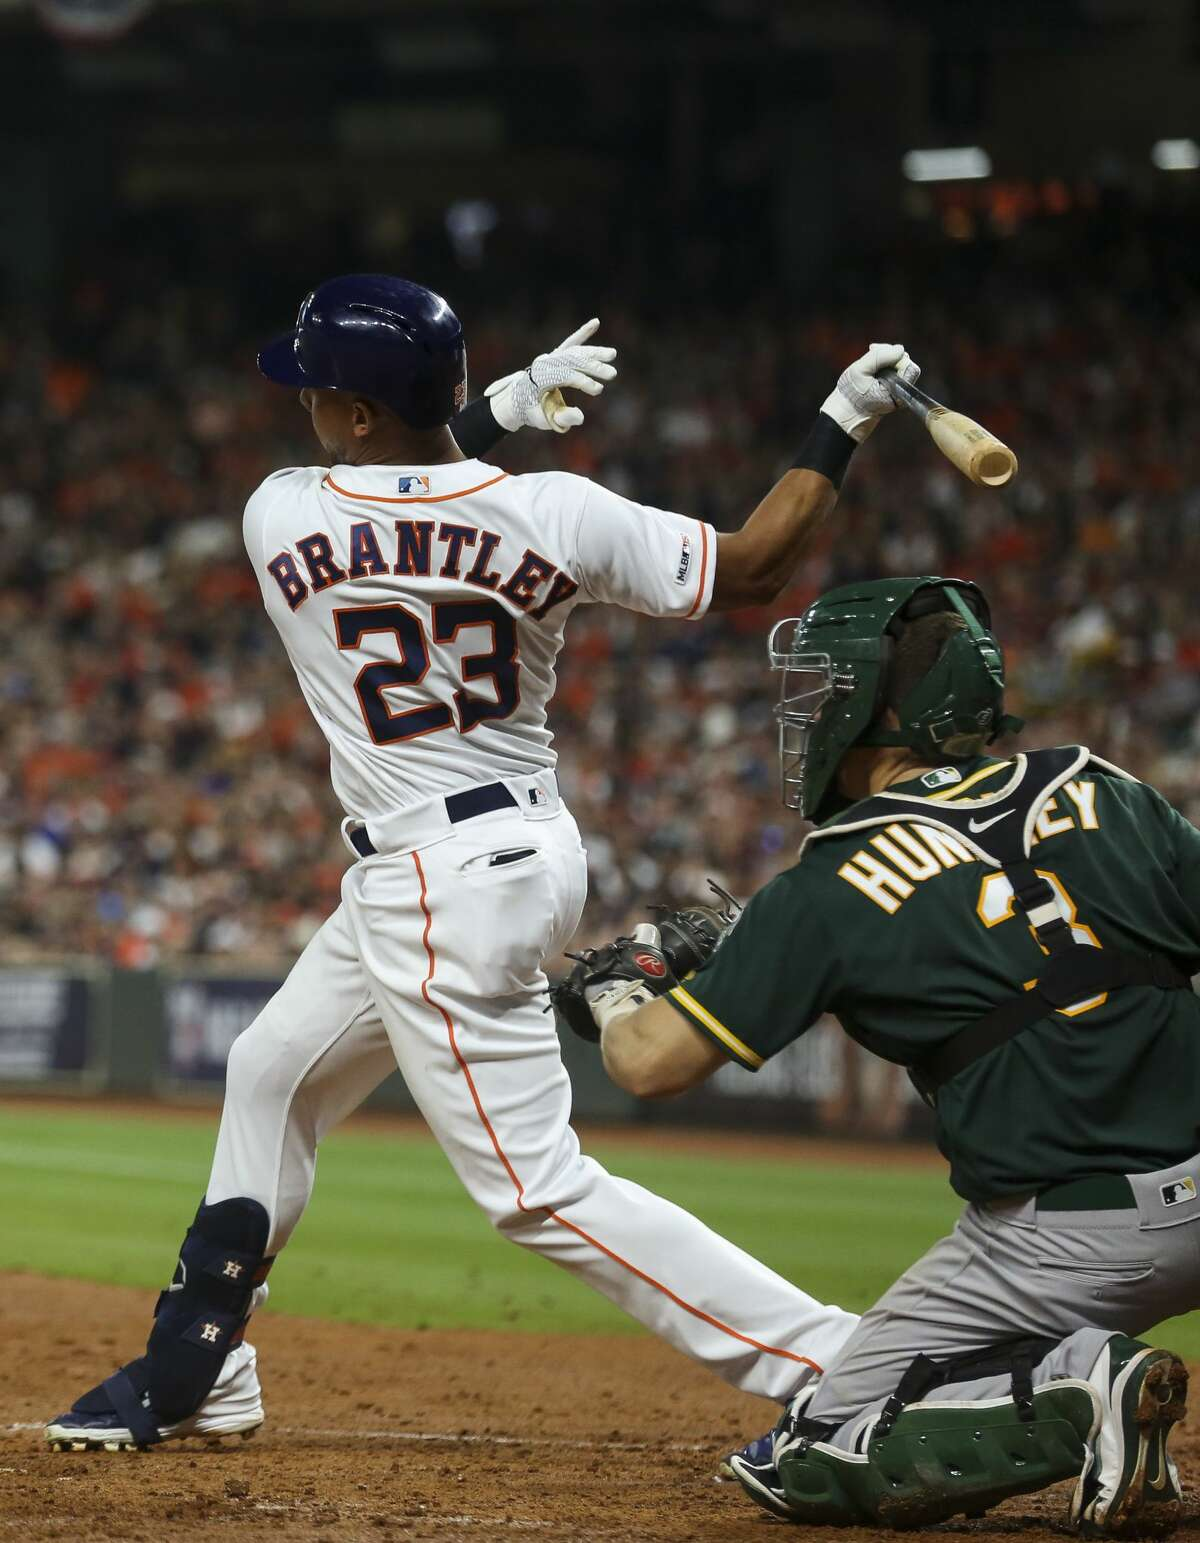 Houston Astros left fielder Michael Brantley (23) strikes out to end the third inning against the Oakland Athletics of an MLB game at Minute Maid Park Friday, April 5, 2019, in Houston.